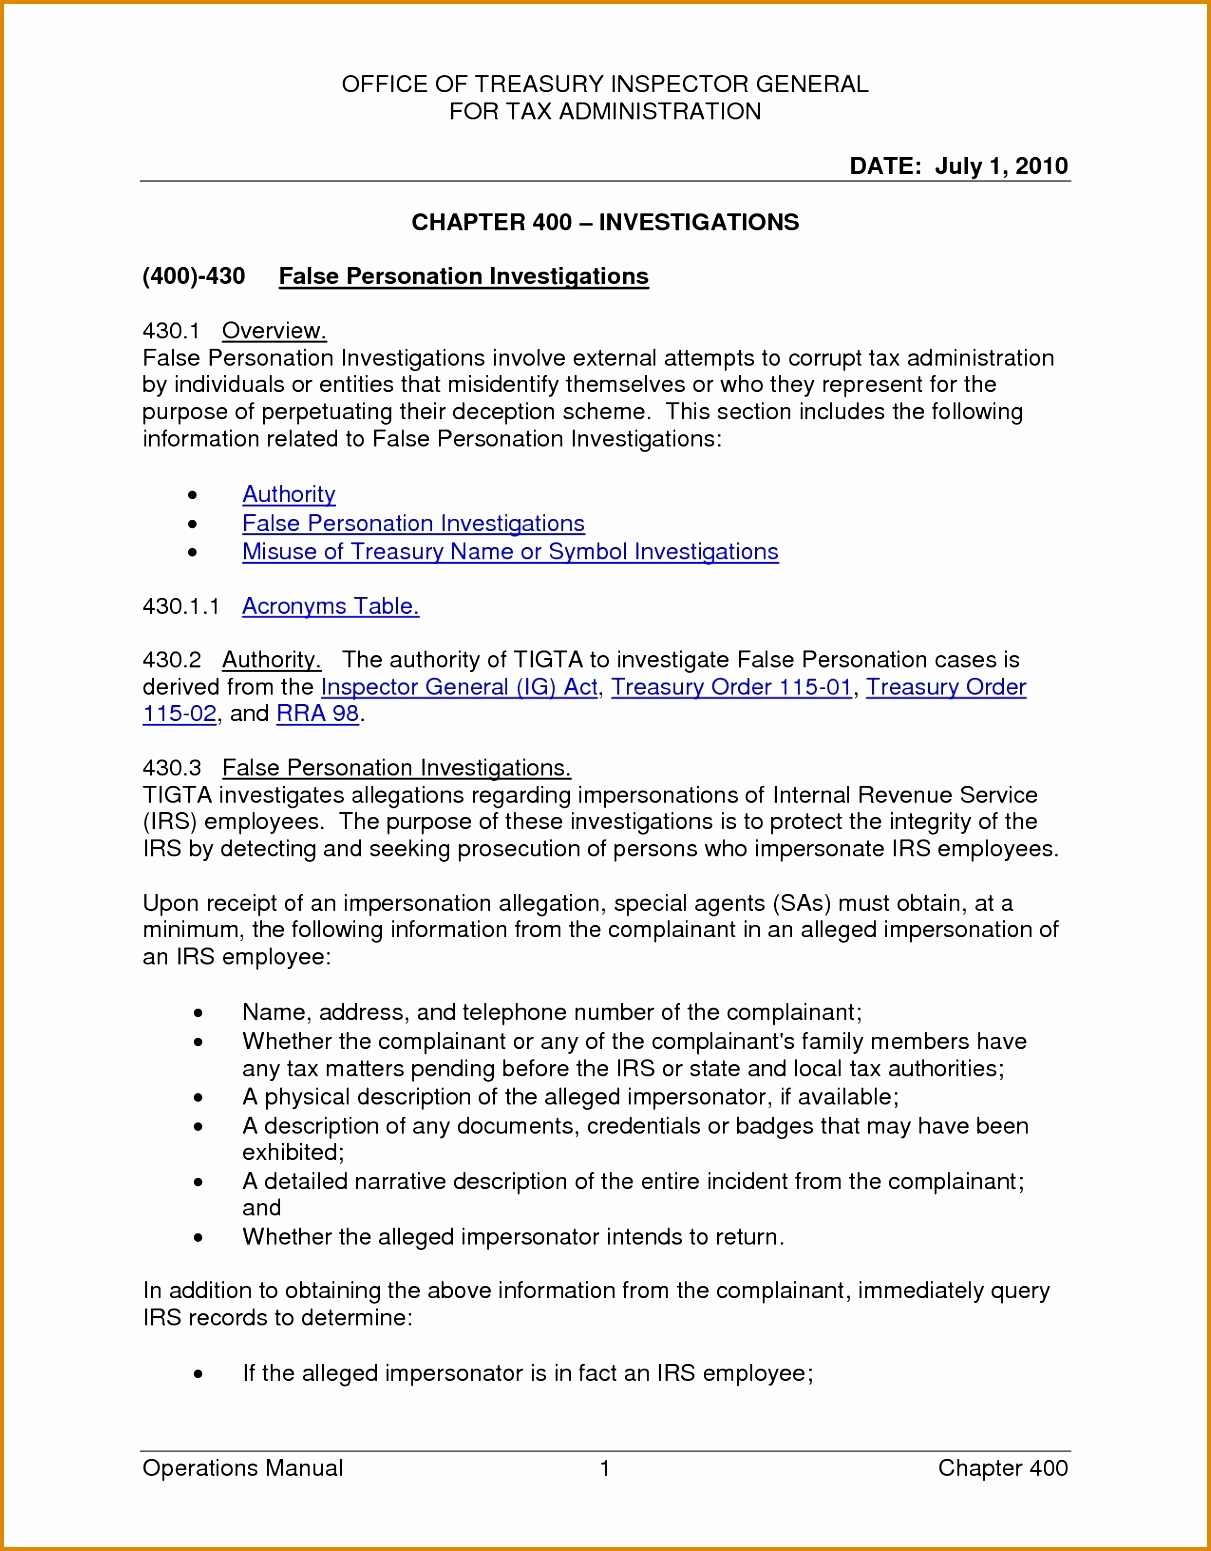 General Cease and Desist Letter Template - Cease and Desist Letter Template Lovely Cease and Desist Template